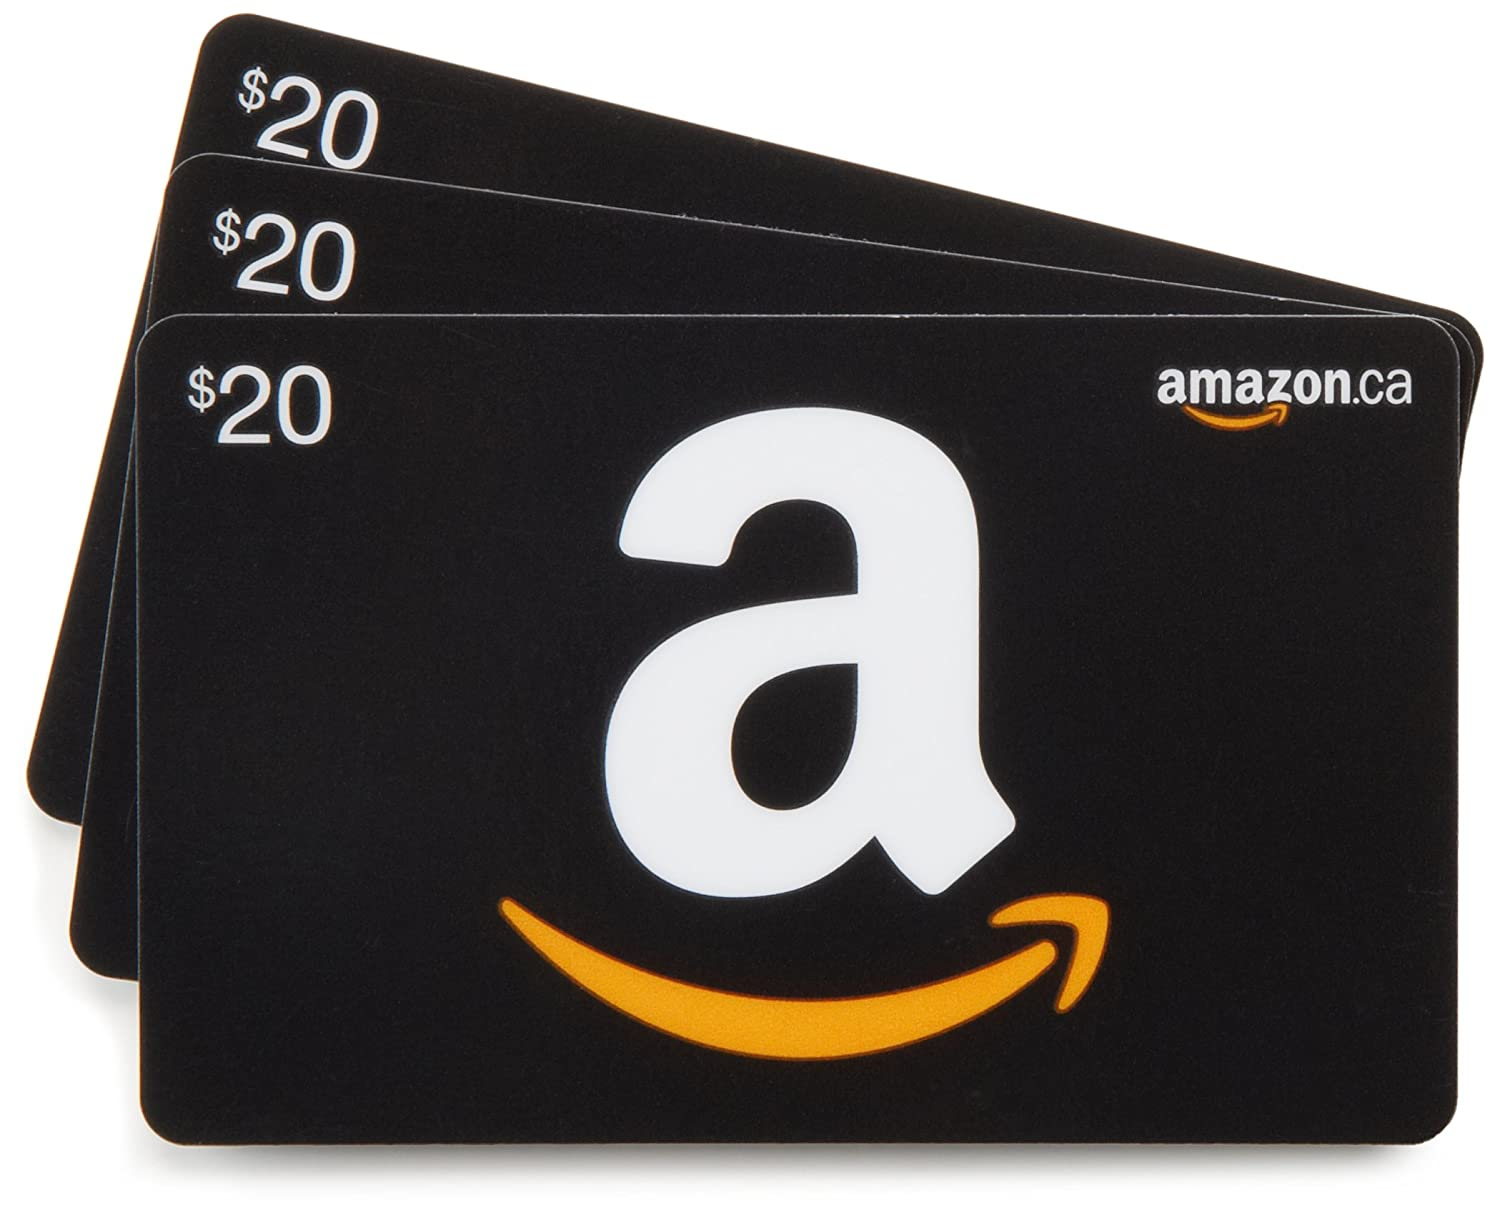 Amazon.ca Gift Cards, Pack of 3 (Various Card Designs) Amazon.ca 10 Gift Cards Amazon.com.ca Inc.